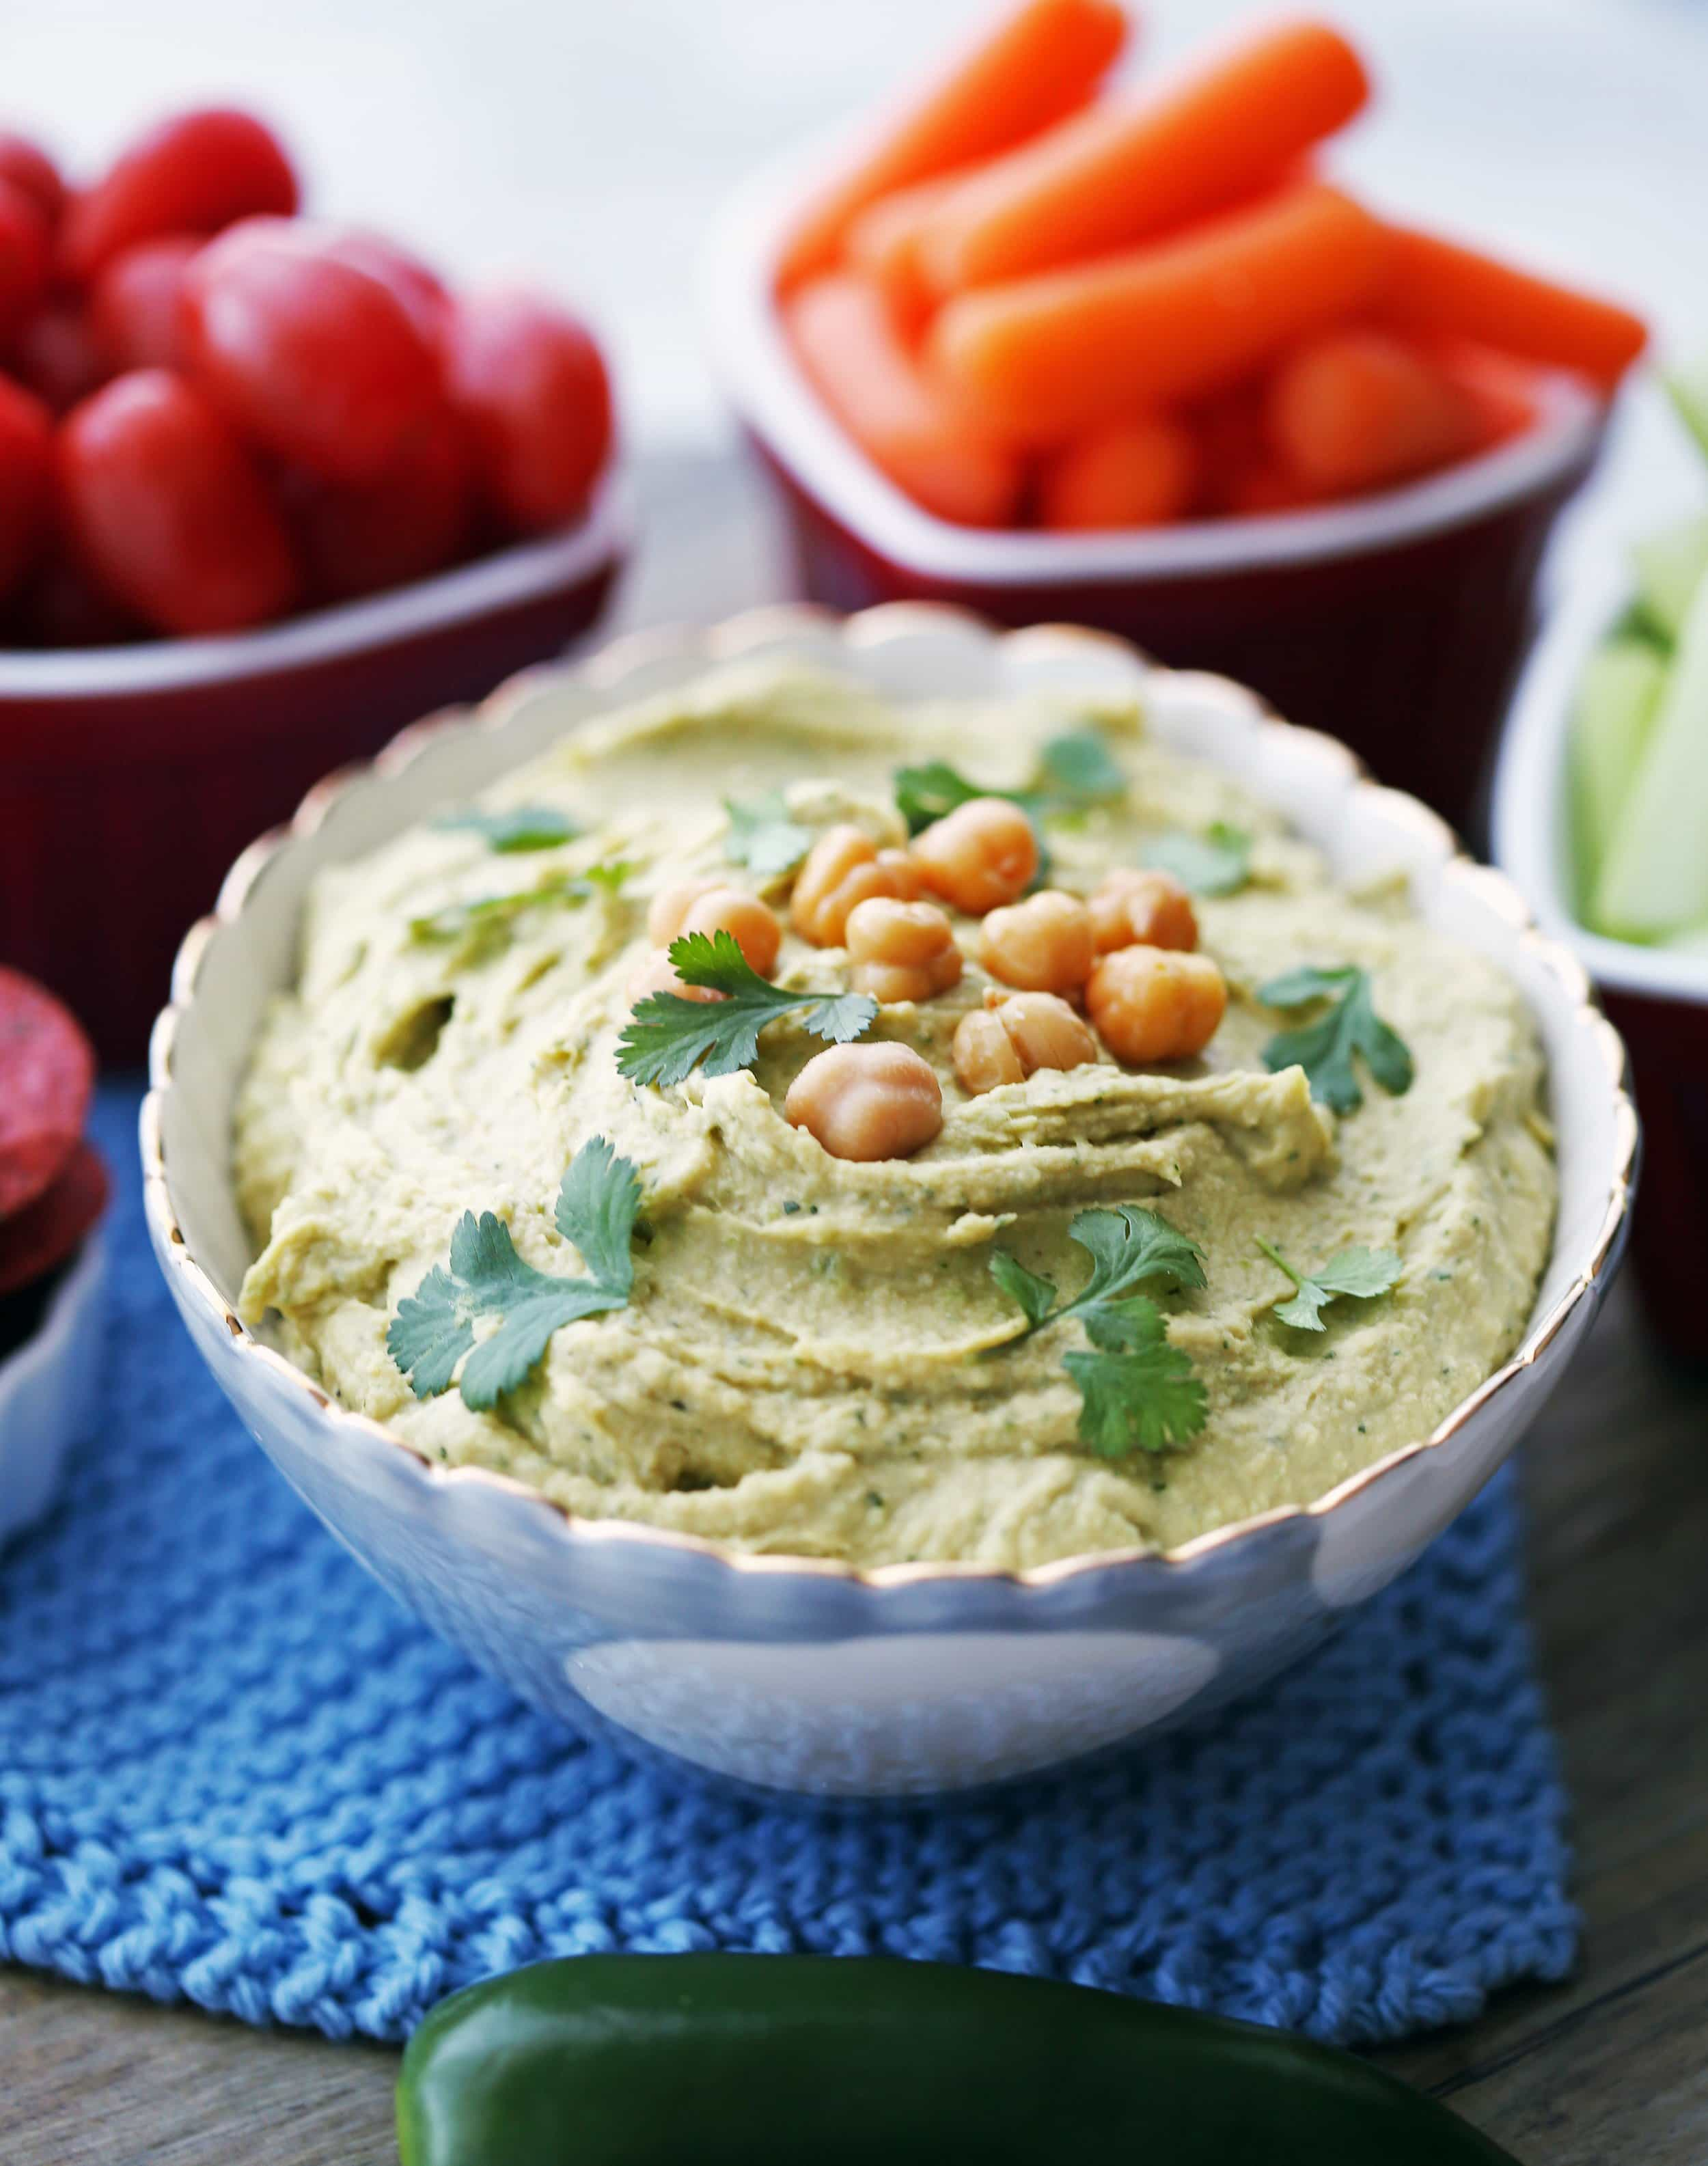 A closeup view of a bowl of jalapeno cilantro hummus with vegetables in the background.